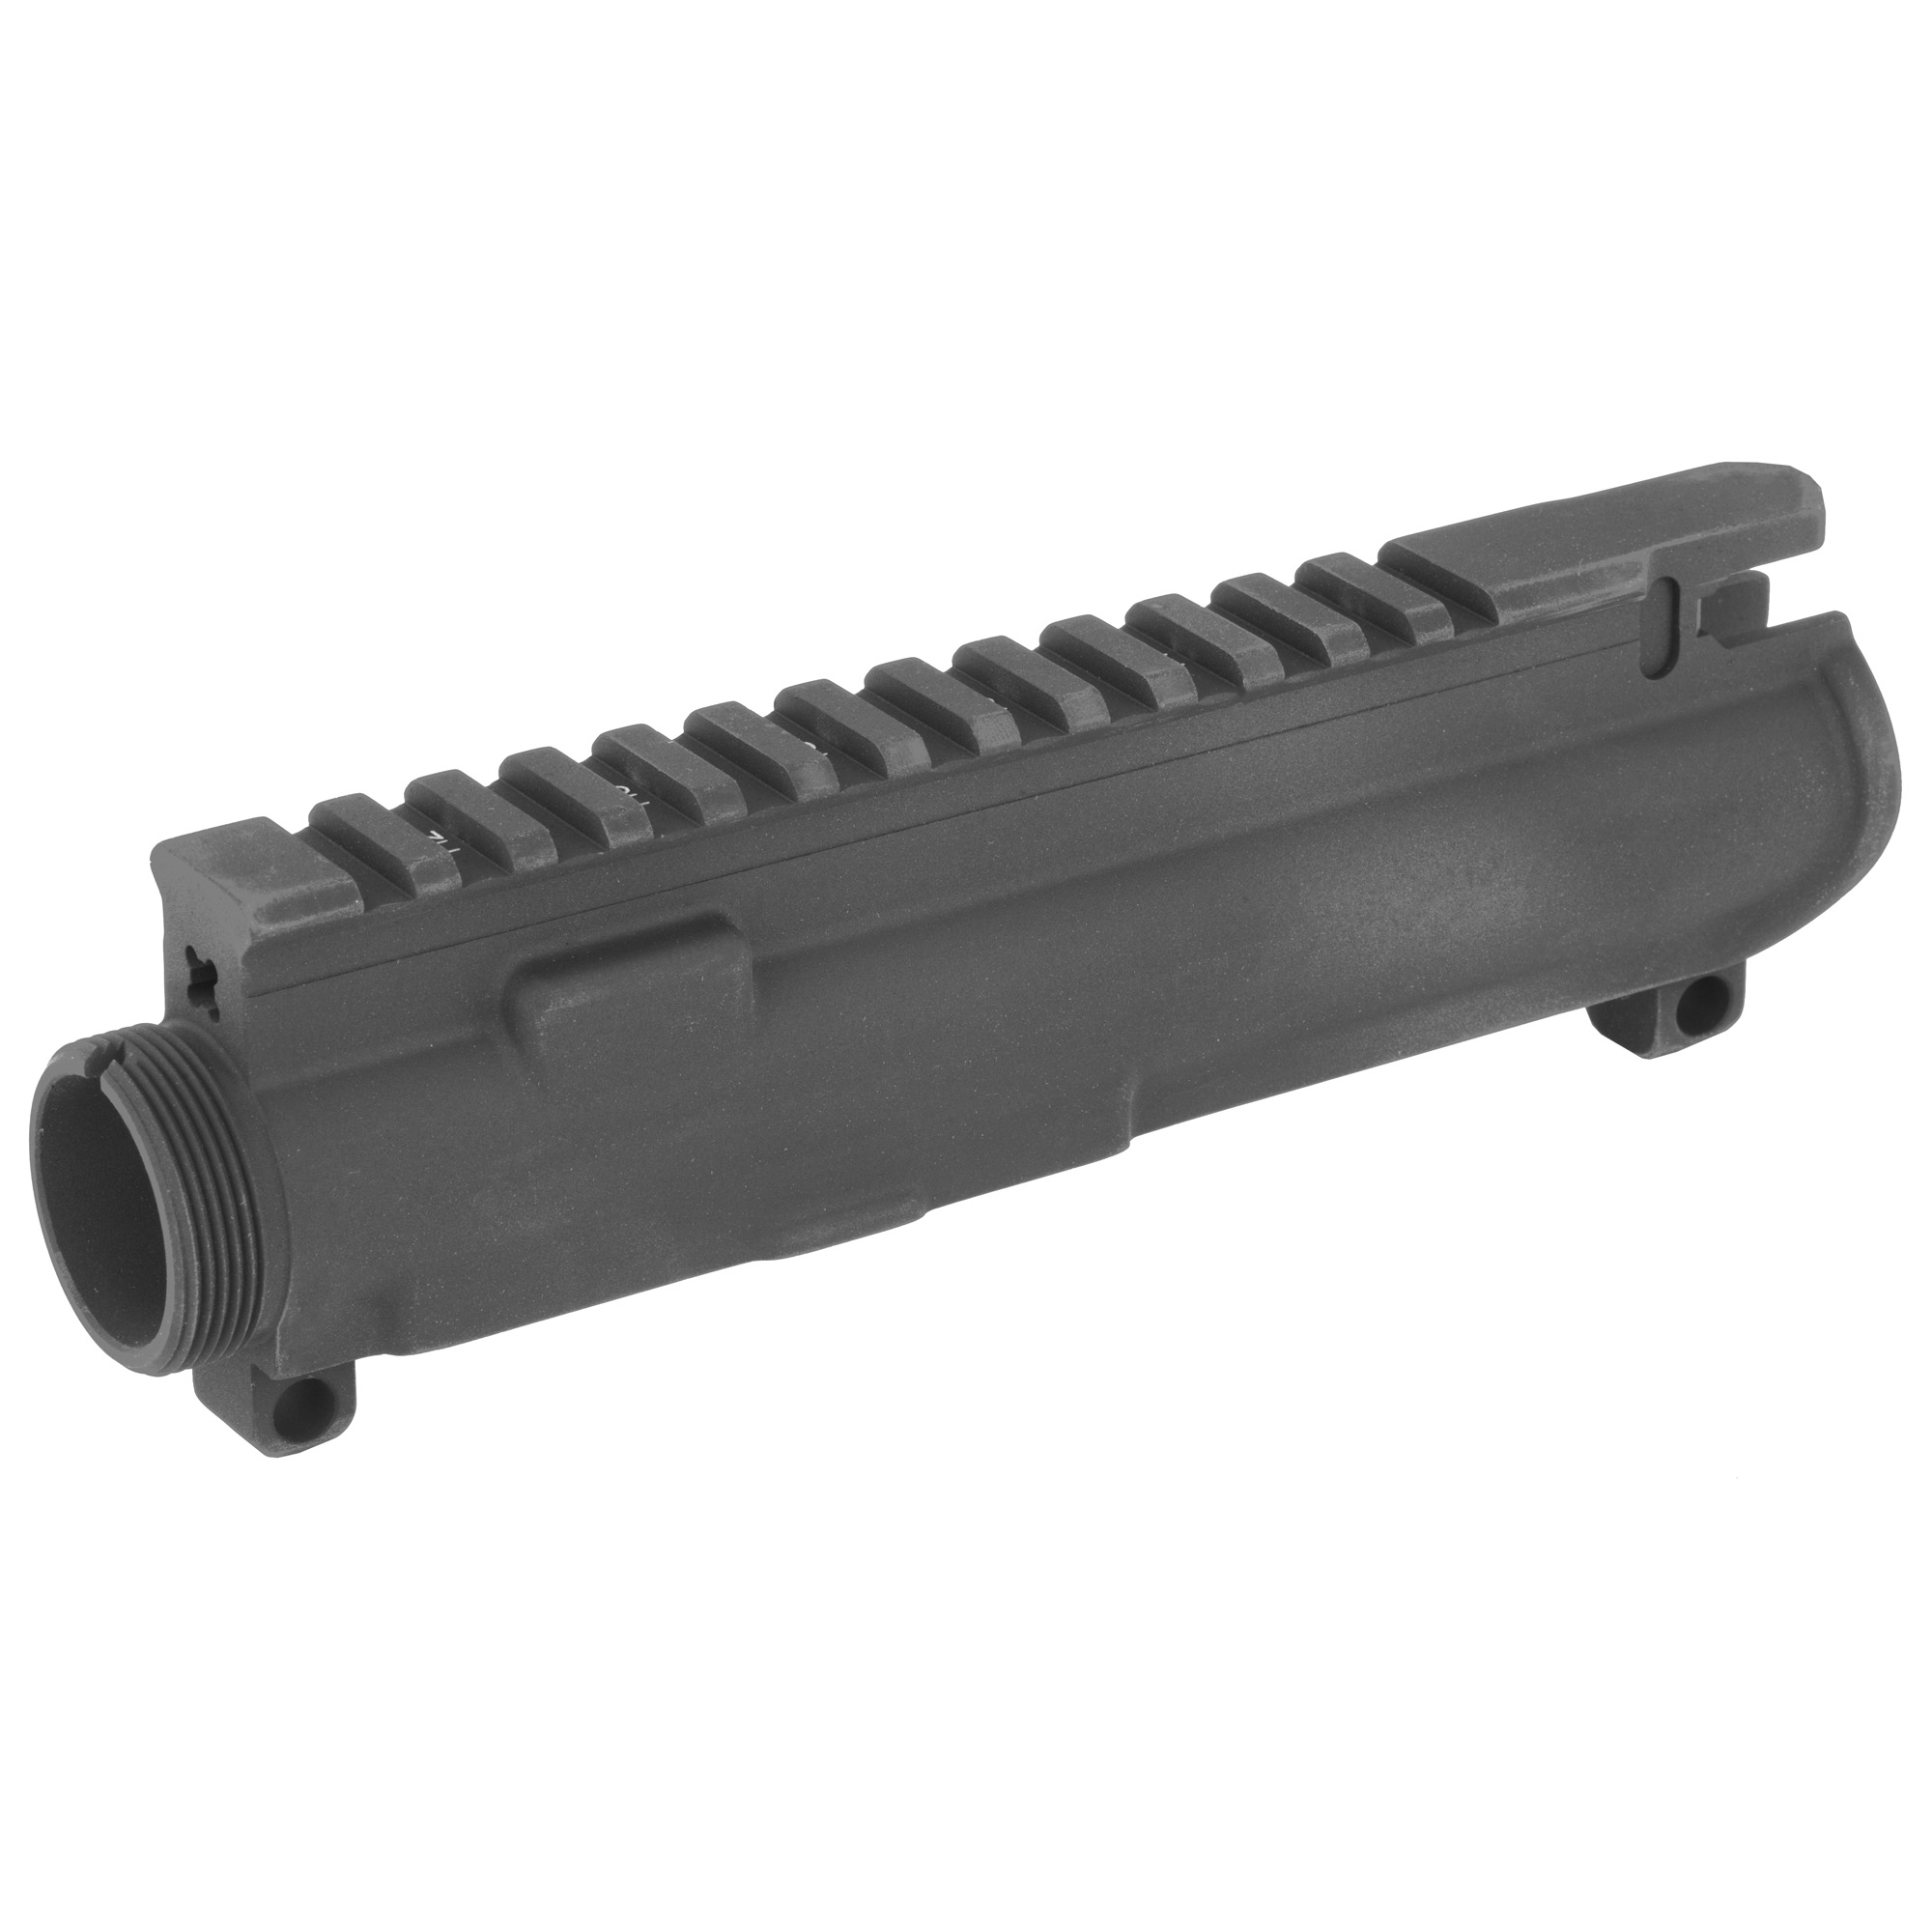 Yhm Ar-15 Stripped Upper Receiver